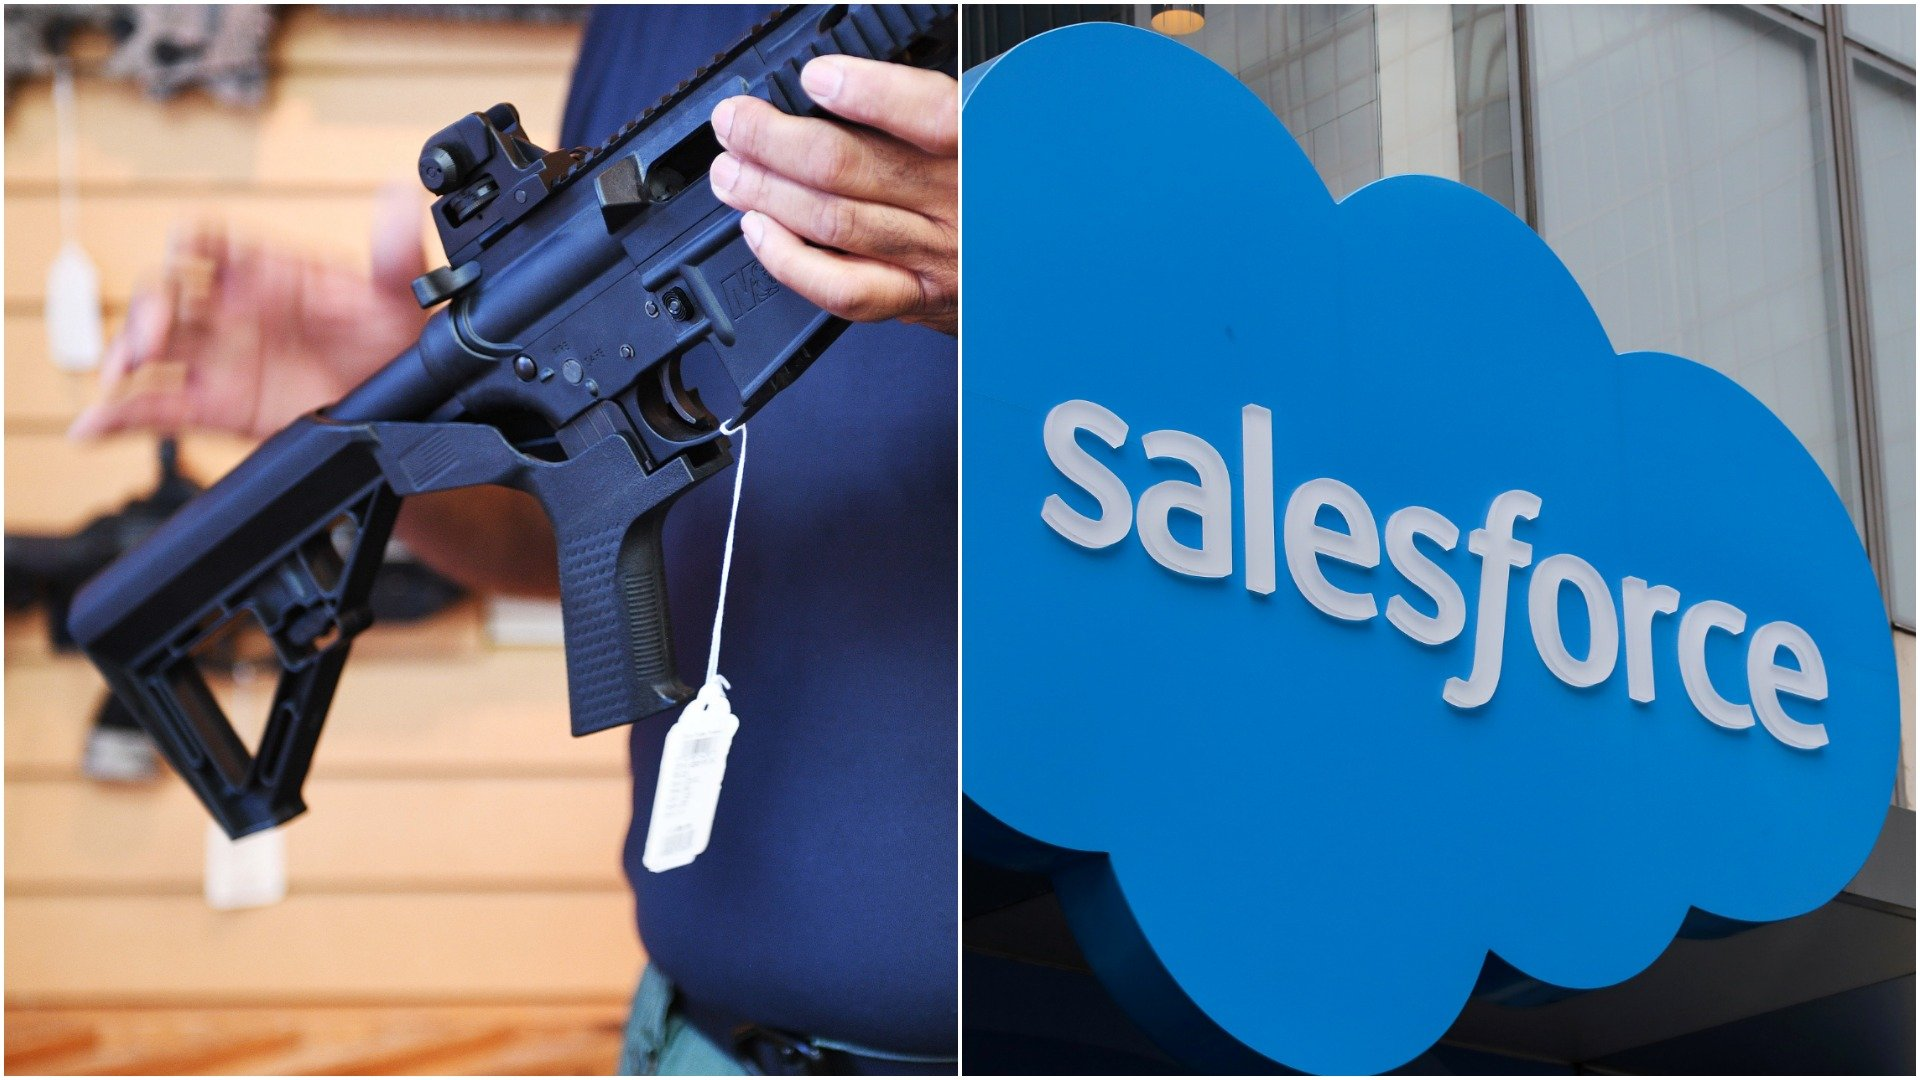 A weapon (JIM WATSON/AFP/Getty Images) and the salesforce logo. (Brendan McDermid/Reuters)